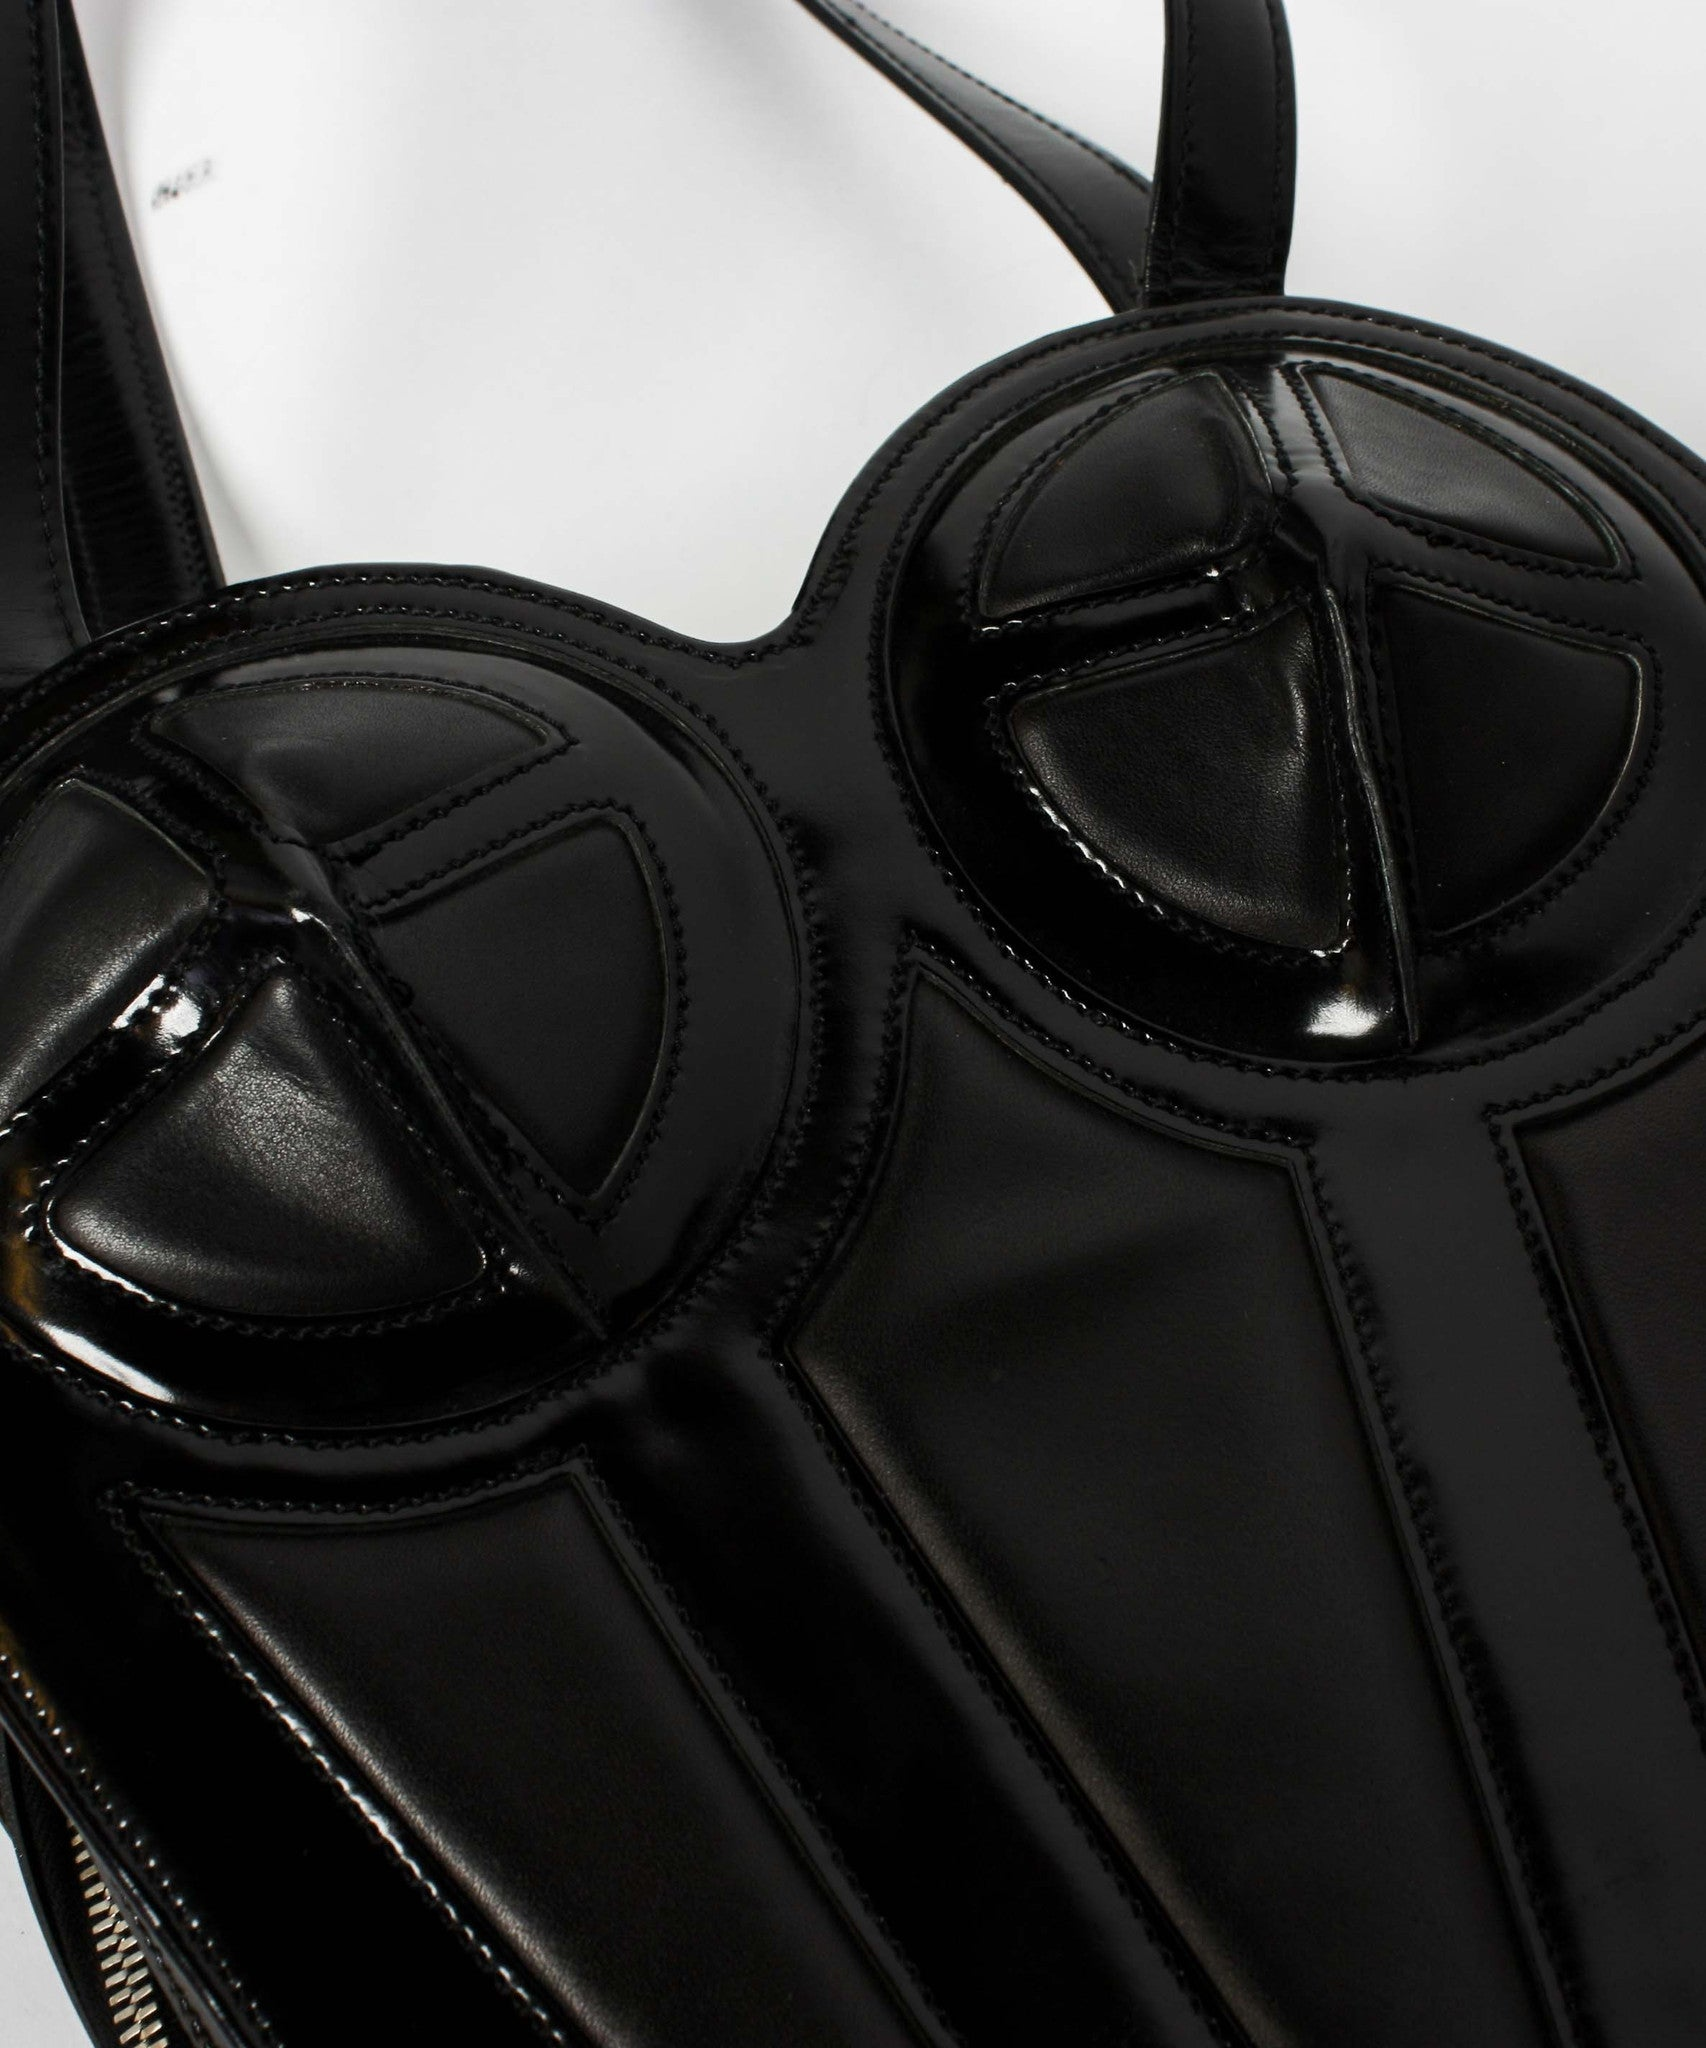 DONE - Jean Paul Gaultier 1998 Black Patent Leather Bustier Backpack - C.Madeleine's